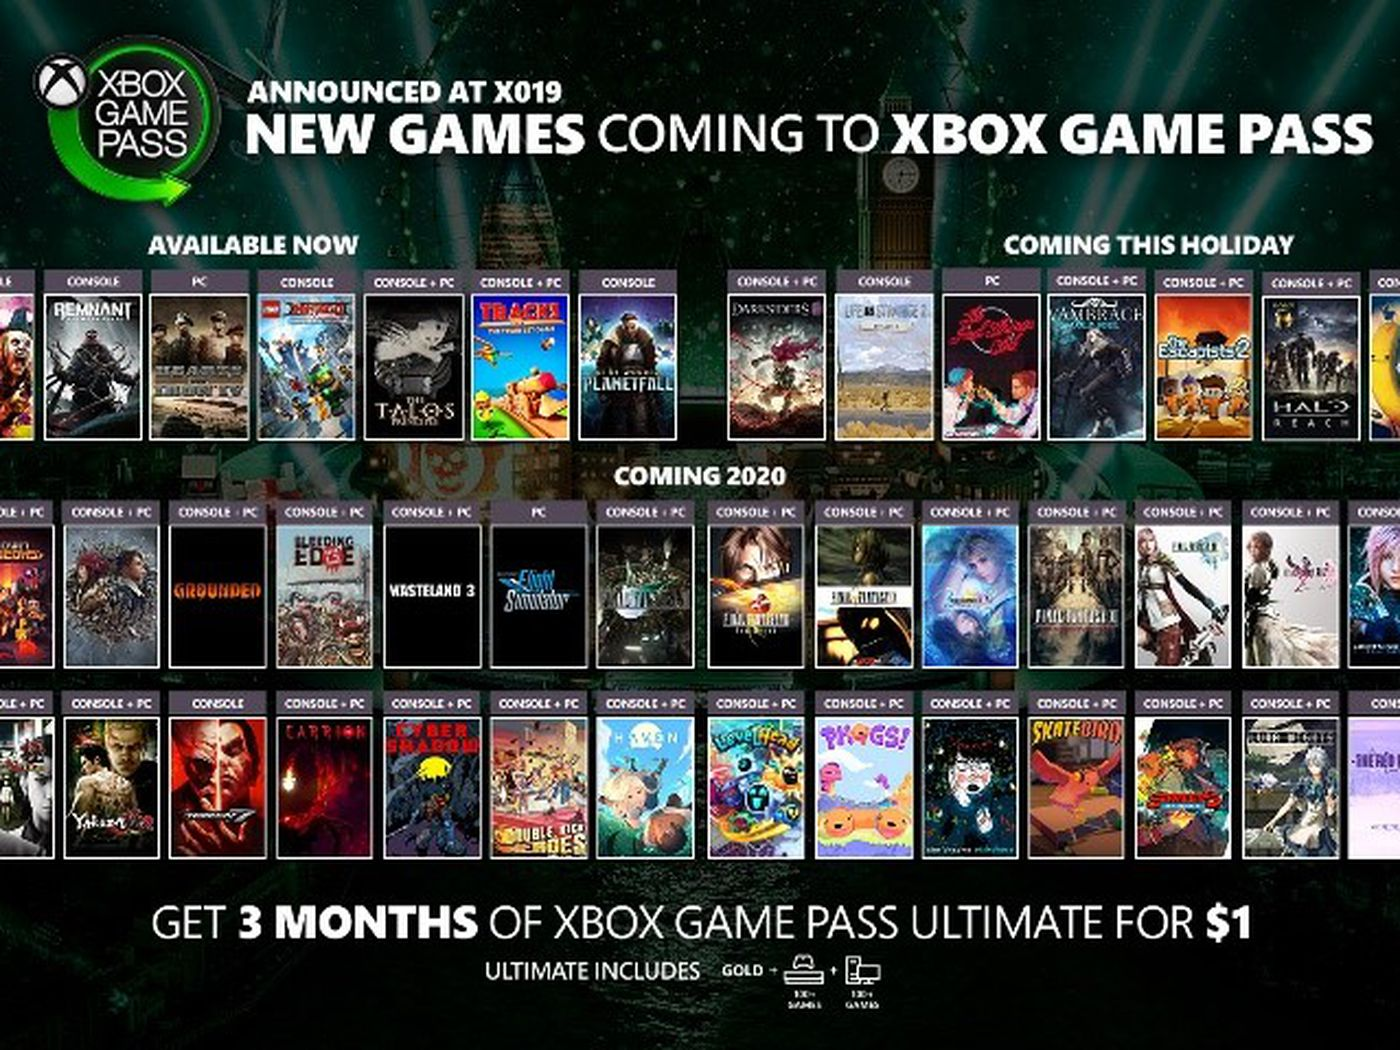 The Final Fantasy Series Is Coming To Xbox Game Pass The Verge